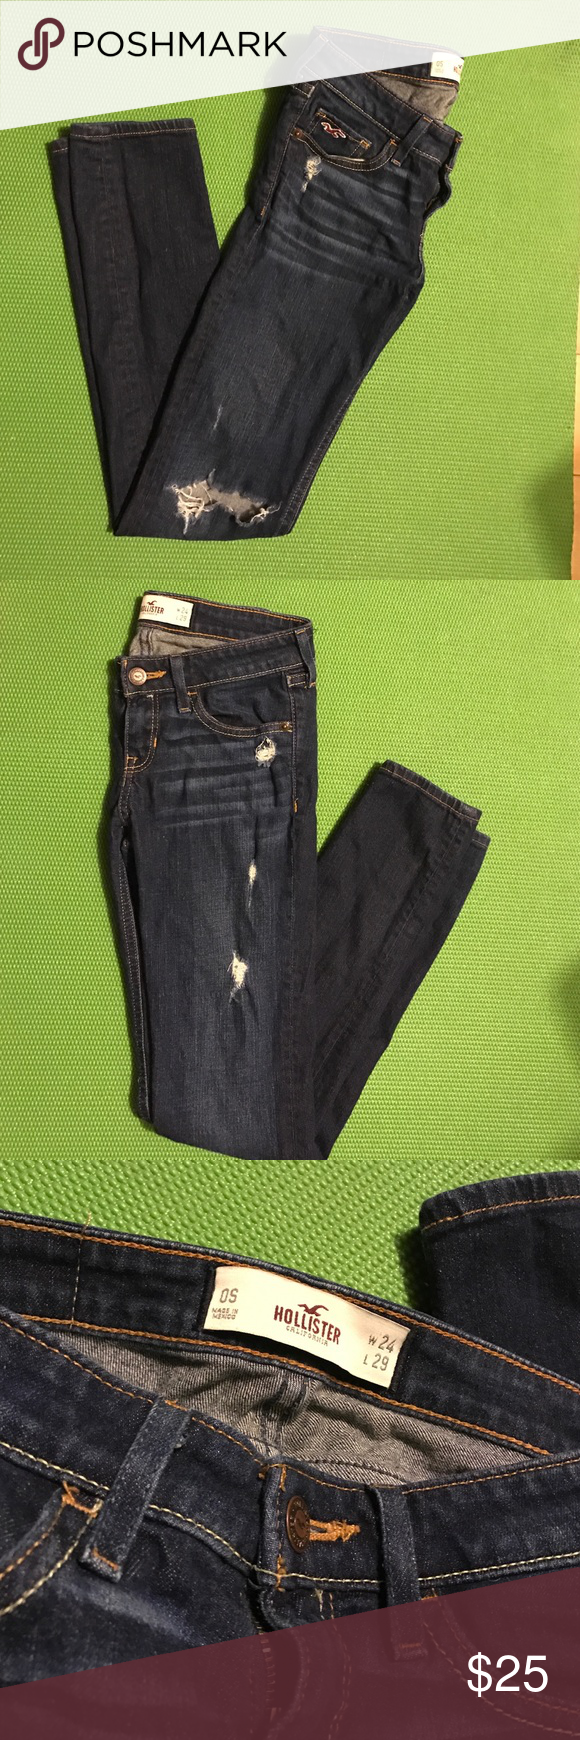 Hollister jeans In great condition, only used a couple of times. I accept offers (: Hollister Jeans Skinny